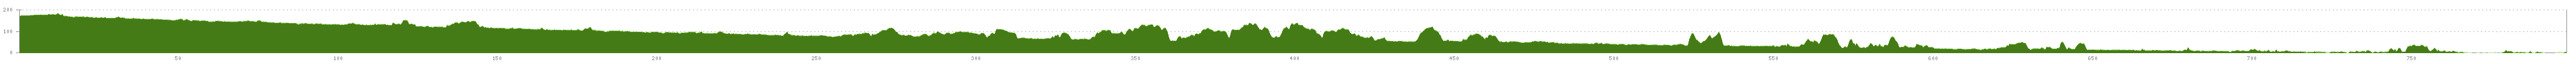 Elevation profile Loire Cycle Route